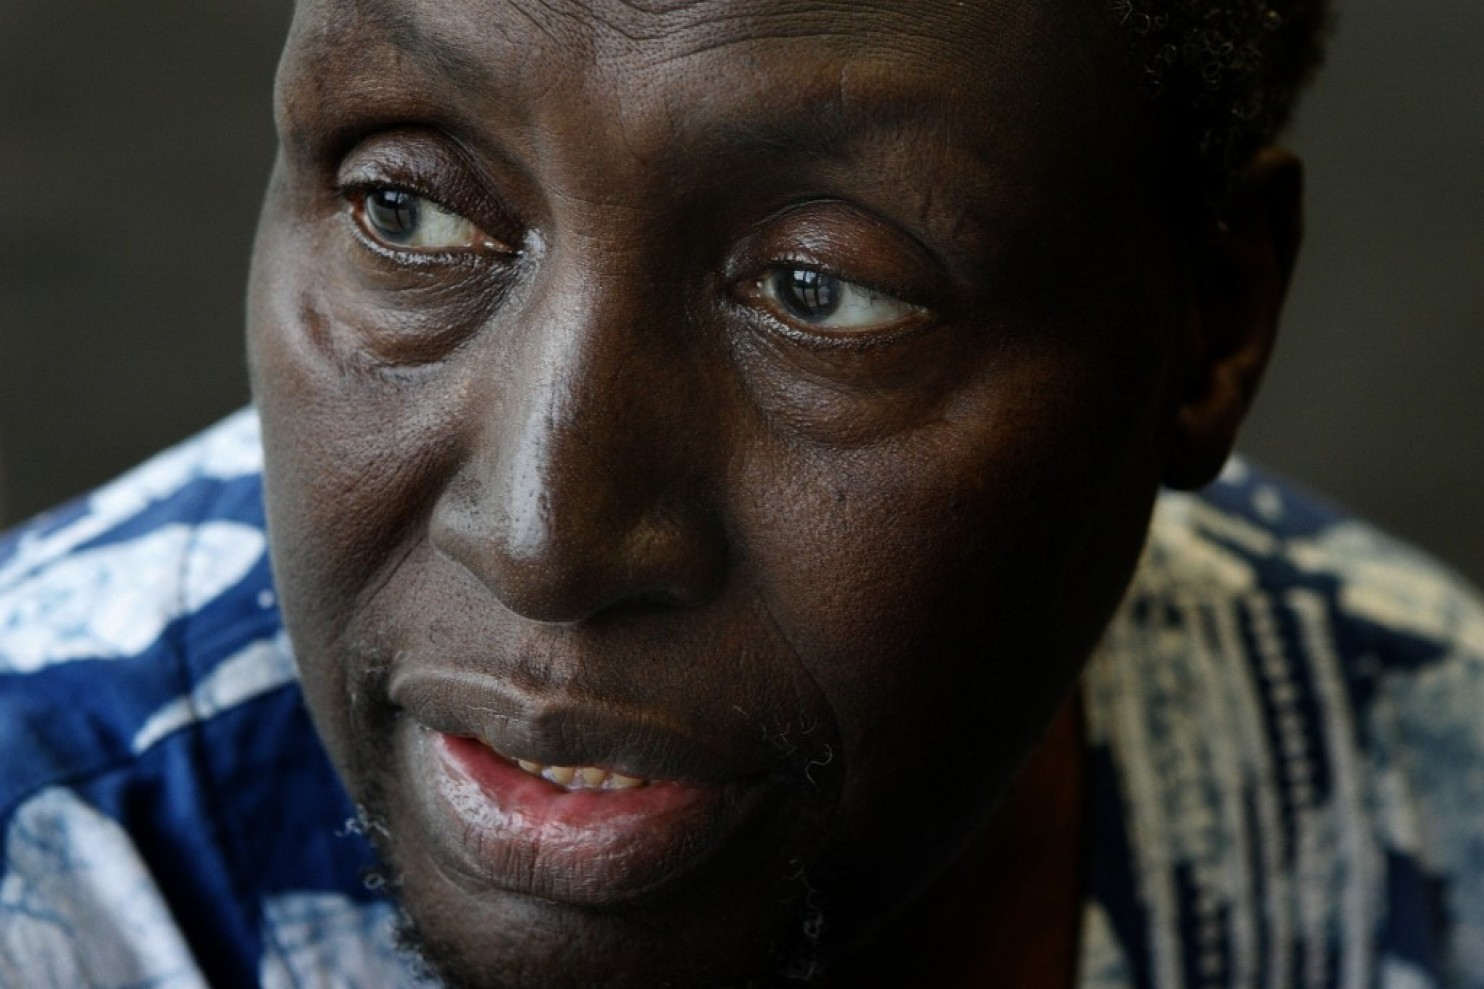 Kenyan writer and former political prisoner Ngugi wa Thiong'o at Howard University in Washington in 2006. (Nikki Khan/The Washington Post)